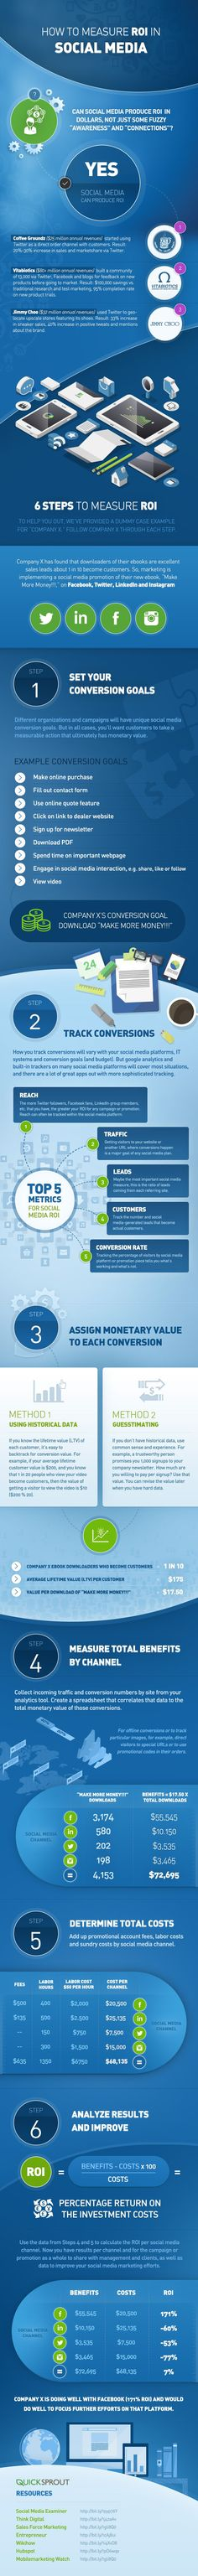 6 Steps to Measure Social Media ROI [INFOGRAPHIC]